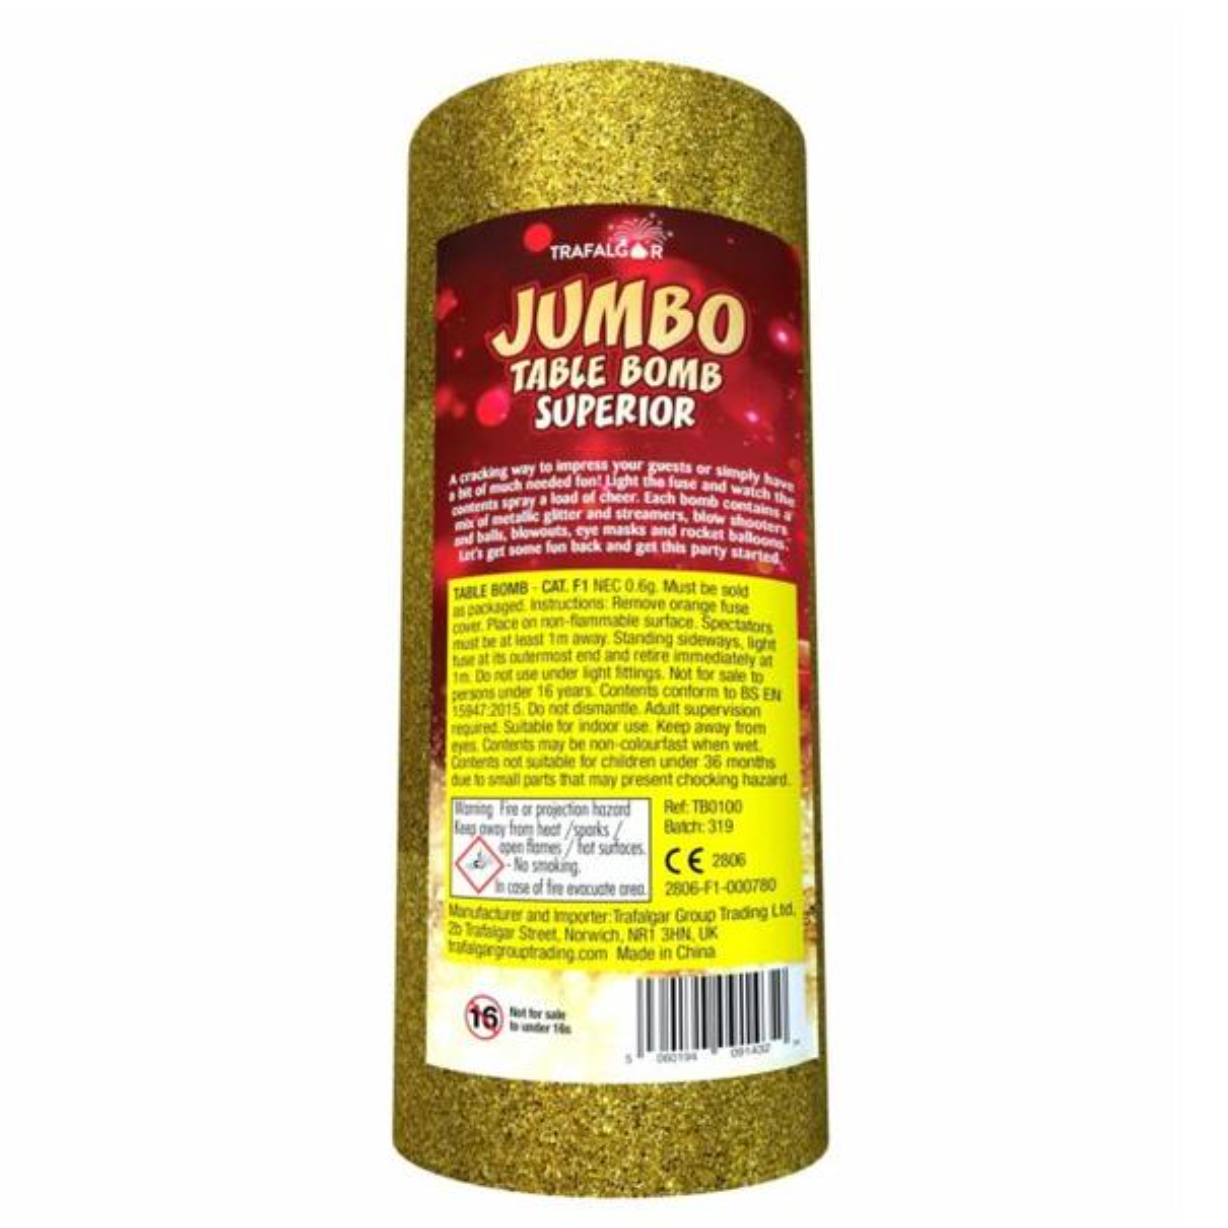 Jumbo Table Bomb Superior